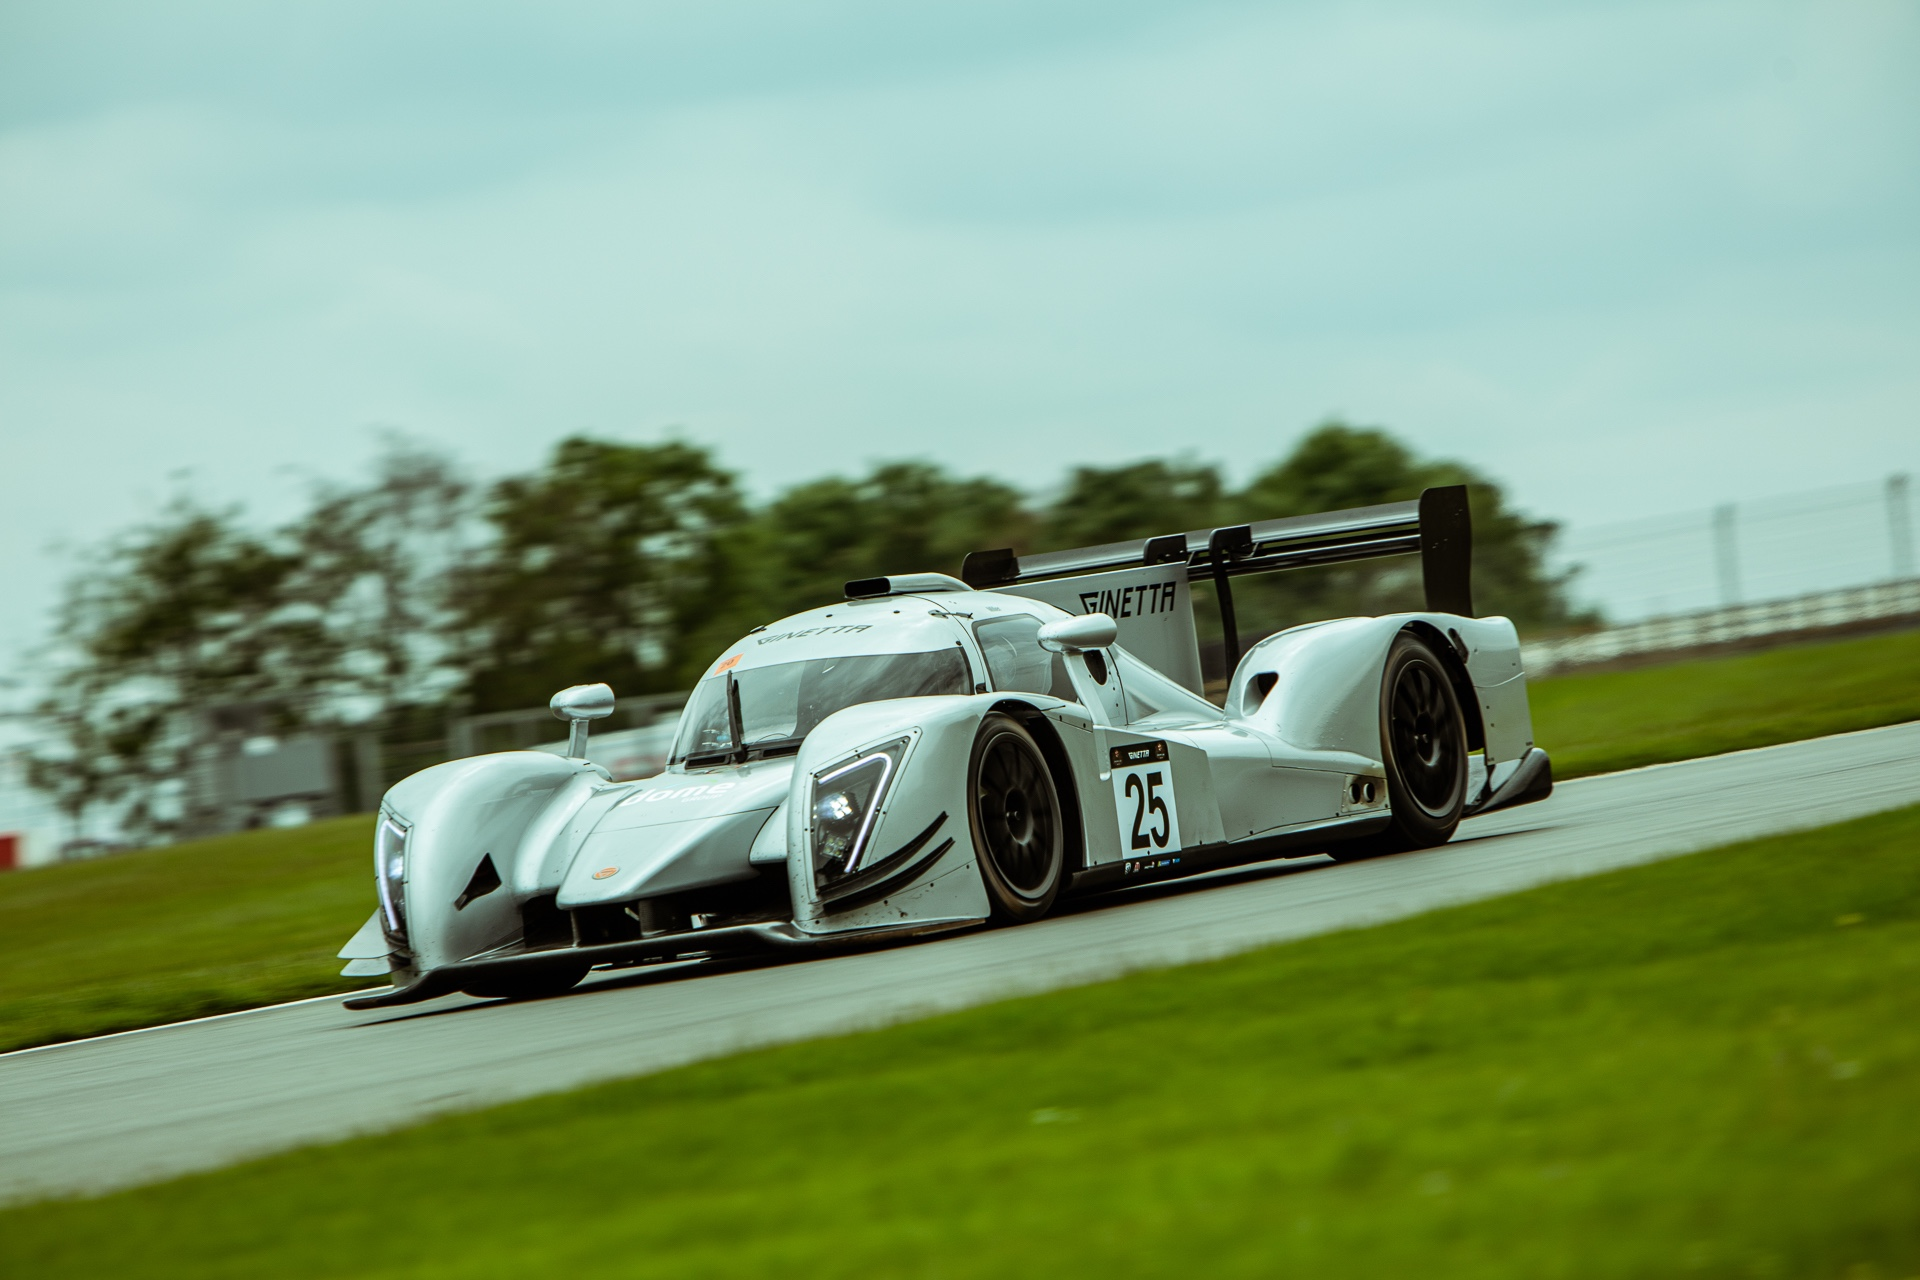 Race Cars For Sale >> Special Report Experiencing Race Cars With Ginetta Gtspirit